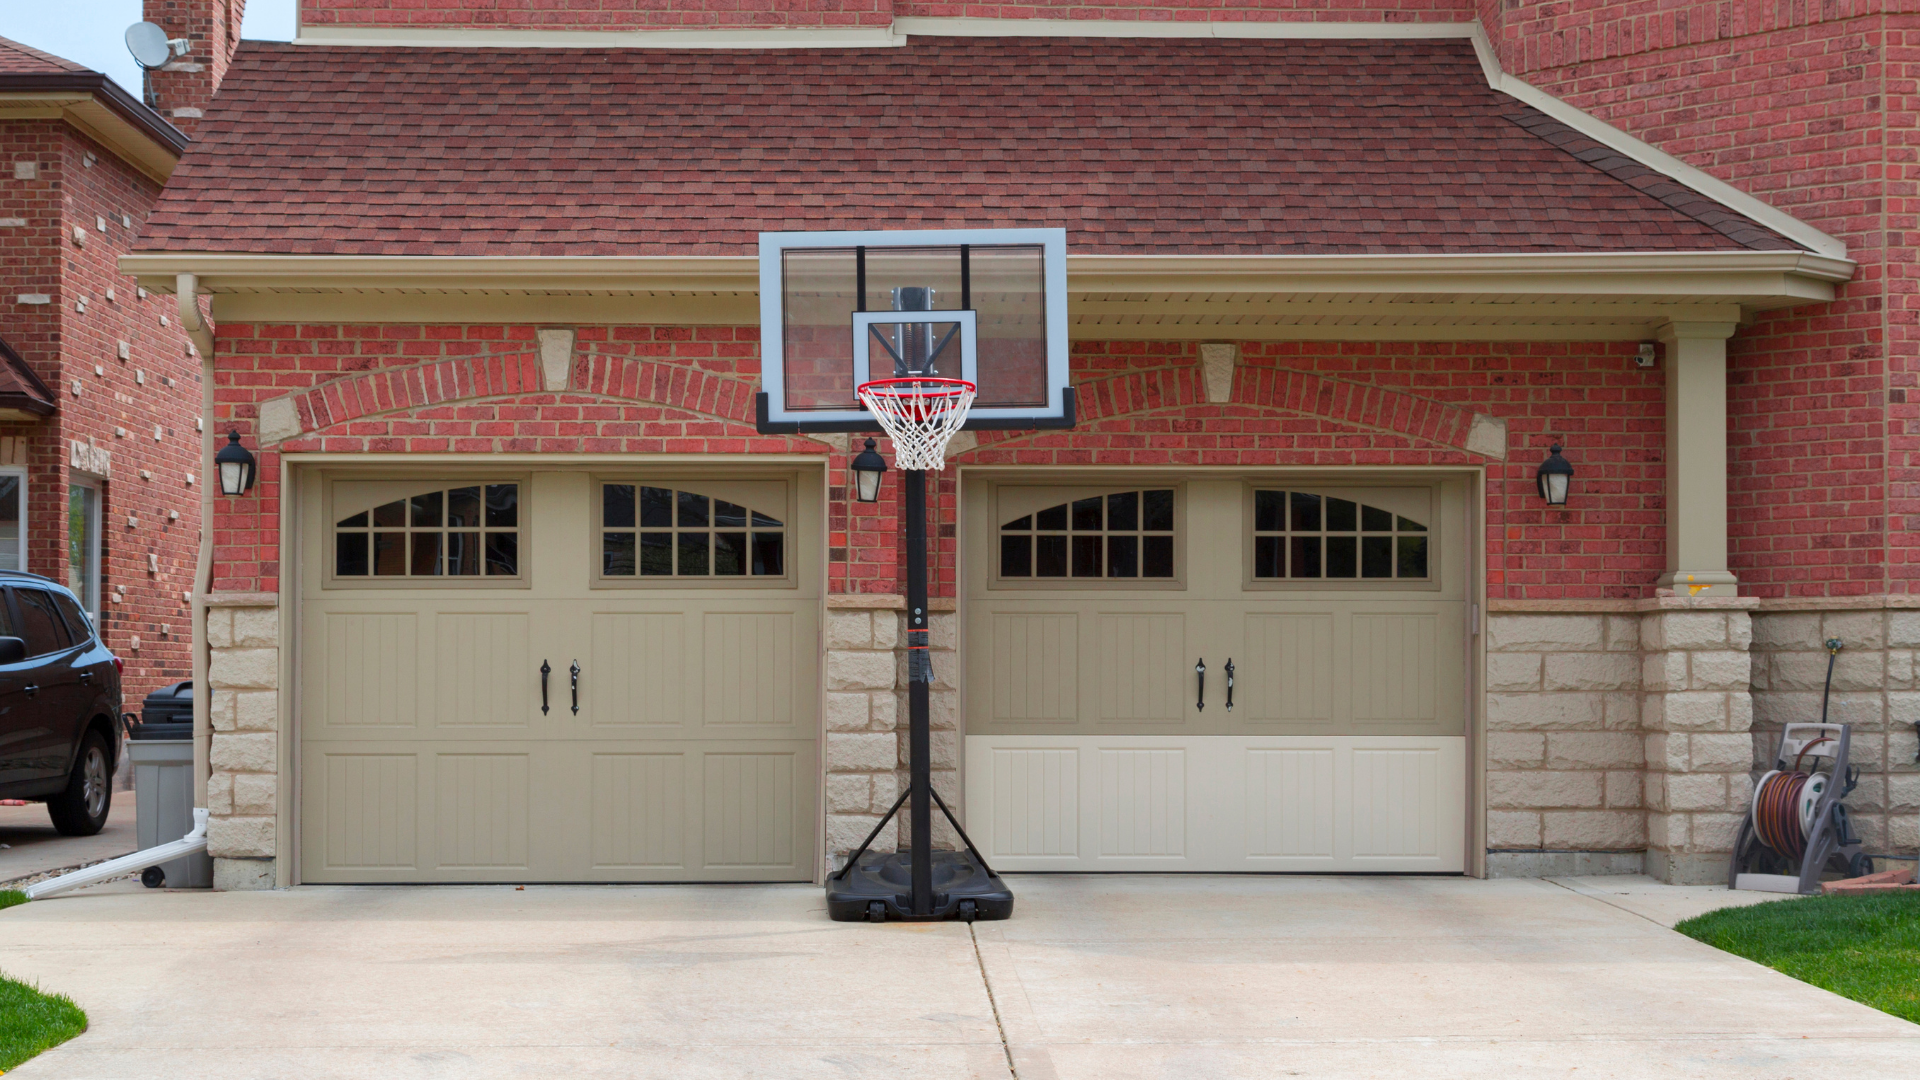 two-car garage with basketball hoop